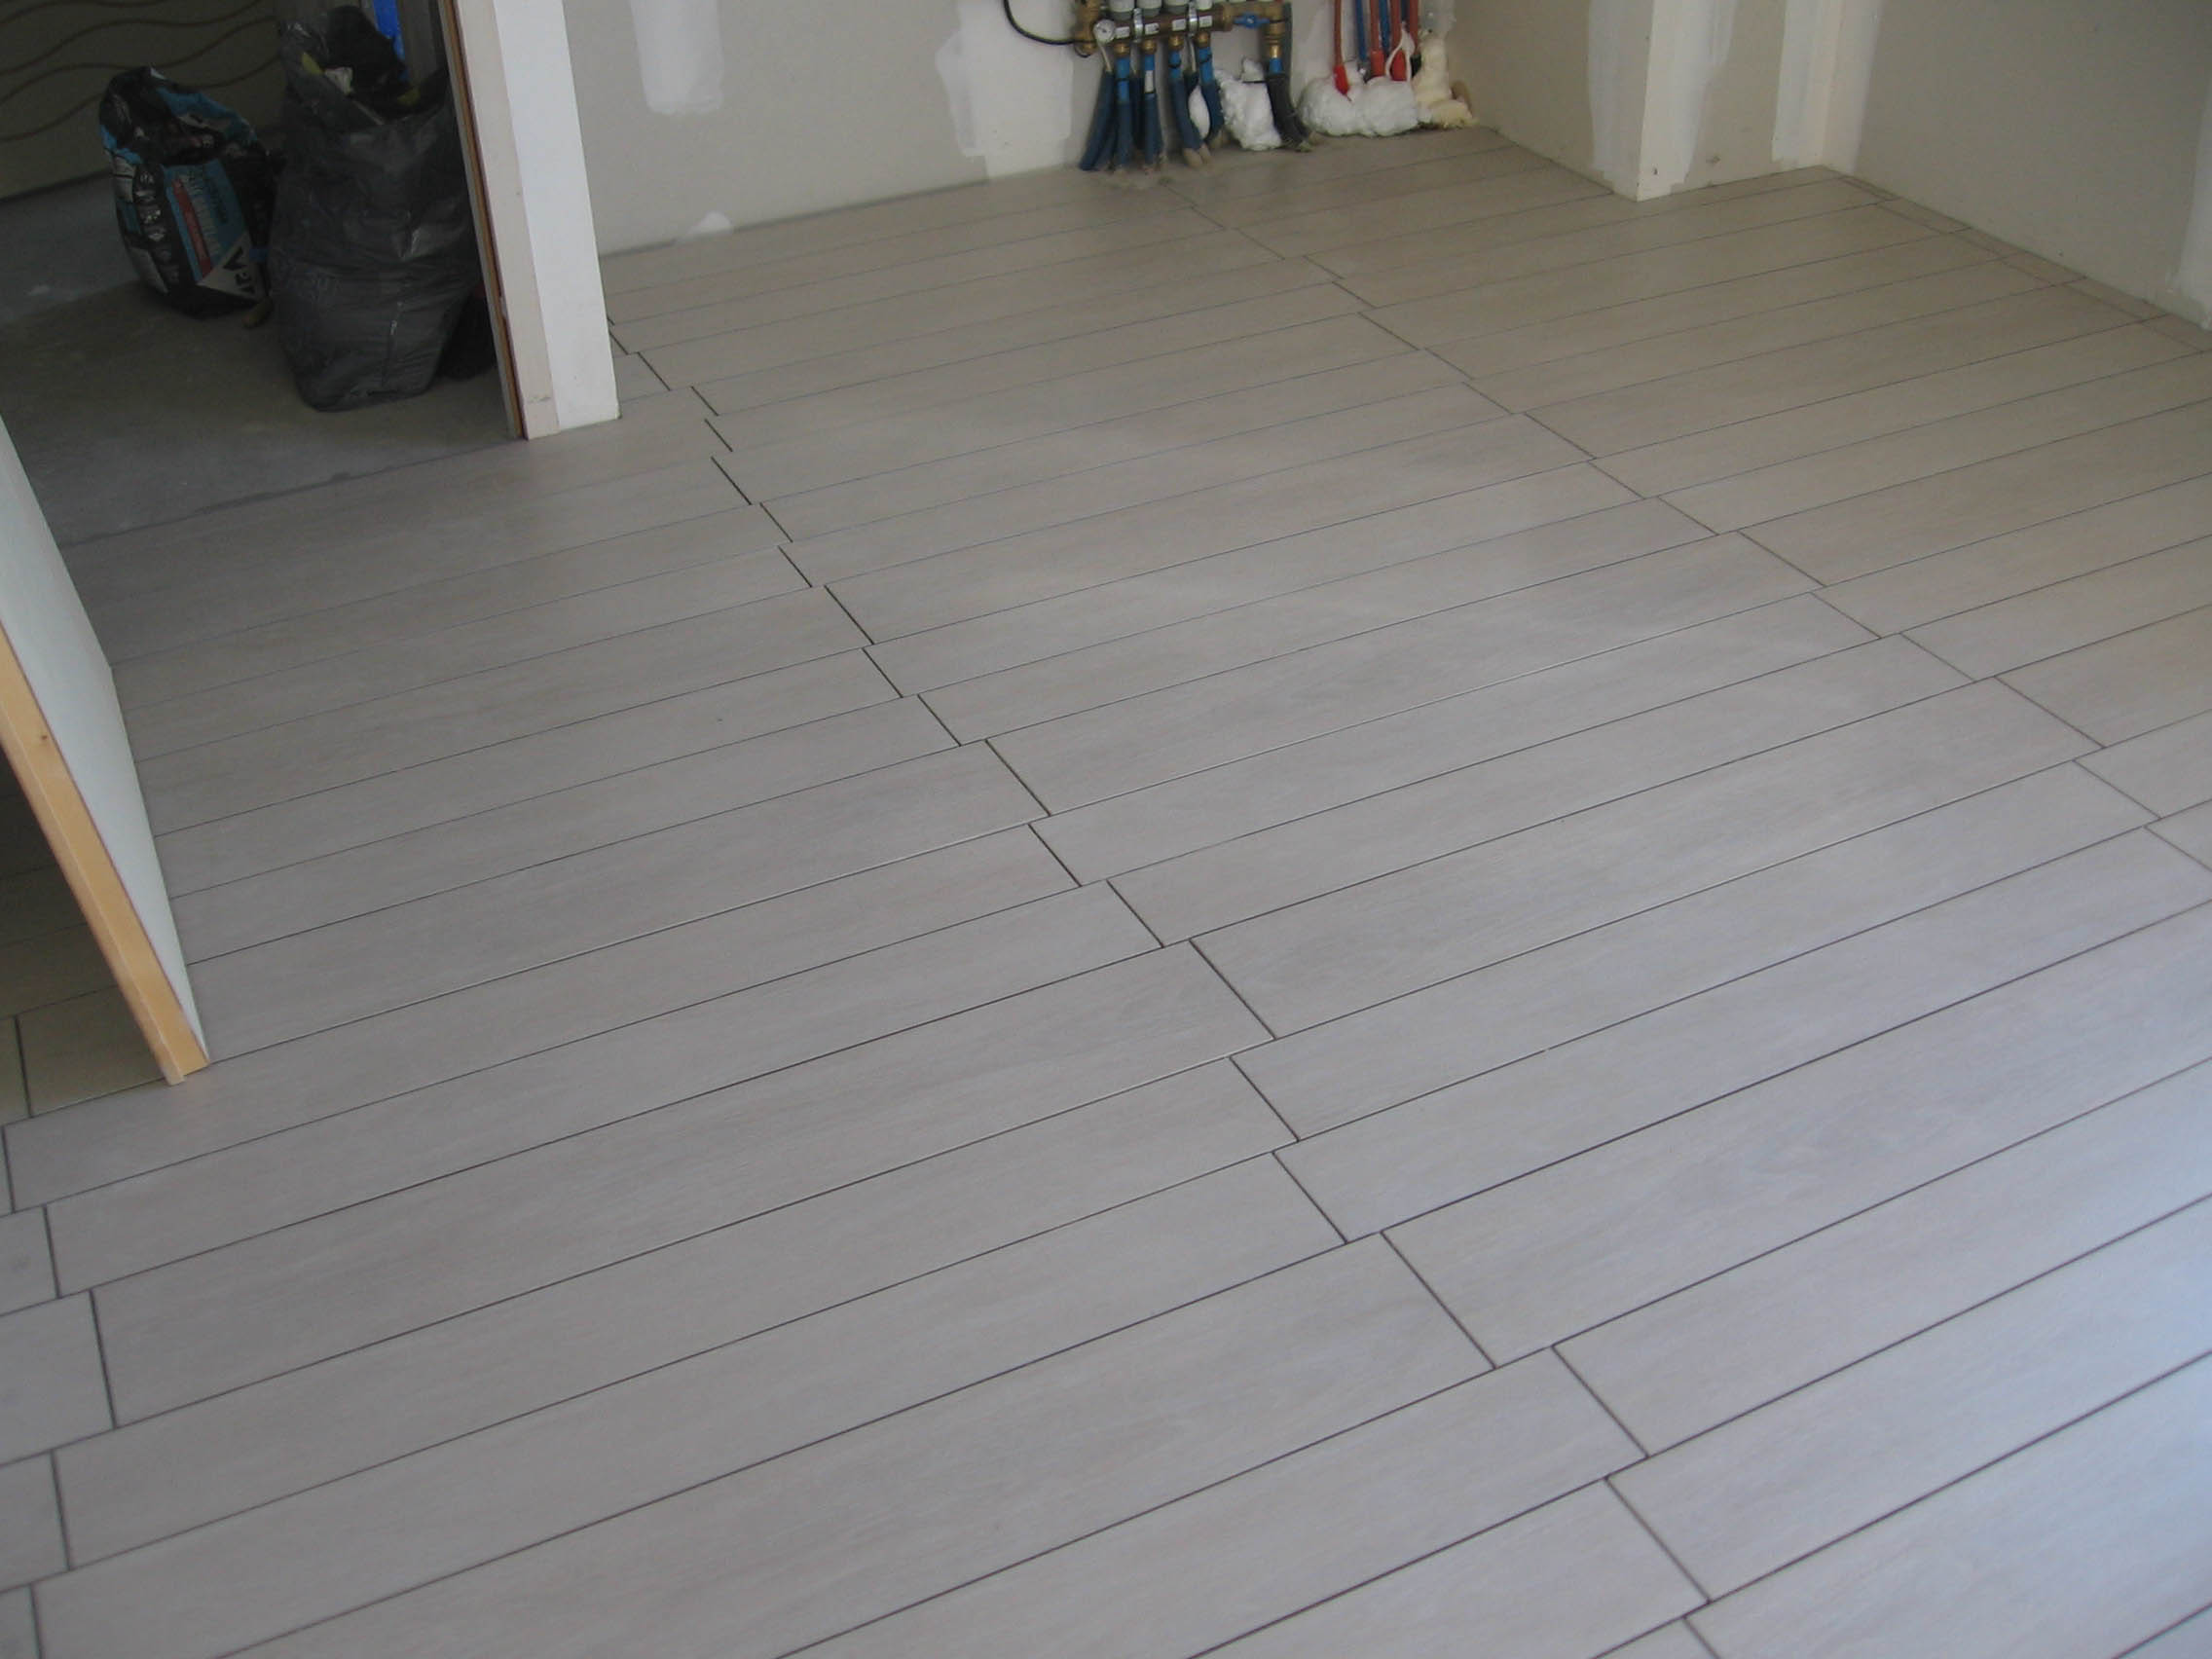 Coller Lambris Pvc Sur Carrelage Carrelage Imitation Parquet La Construction De Fortitou